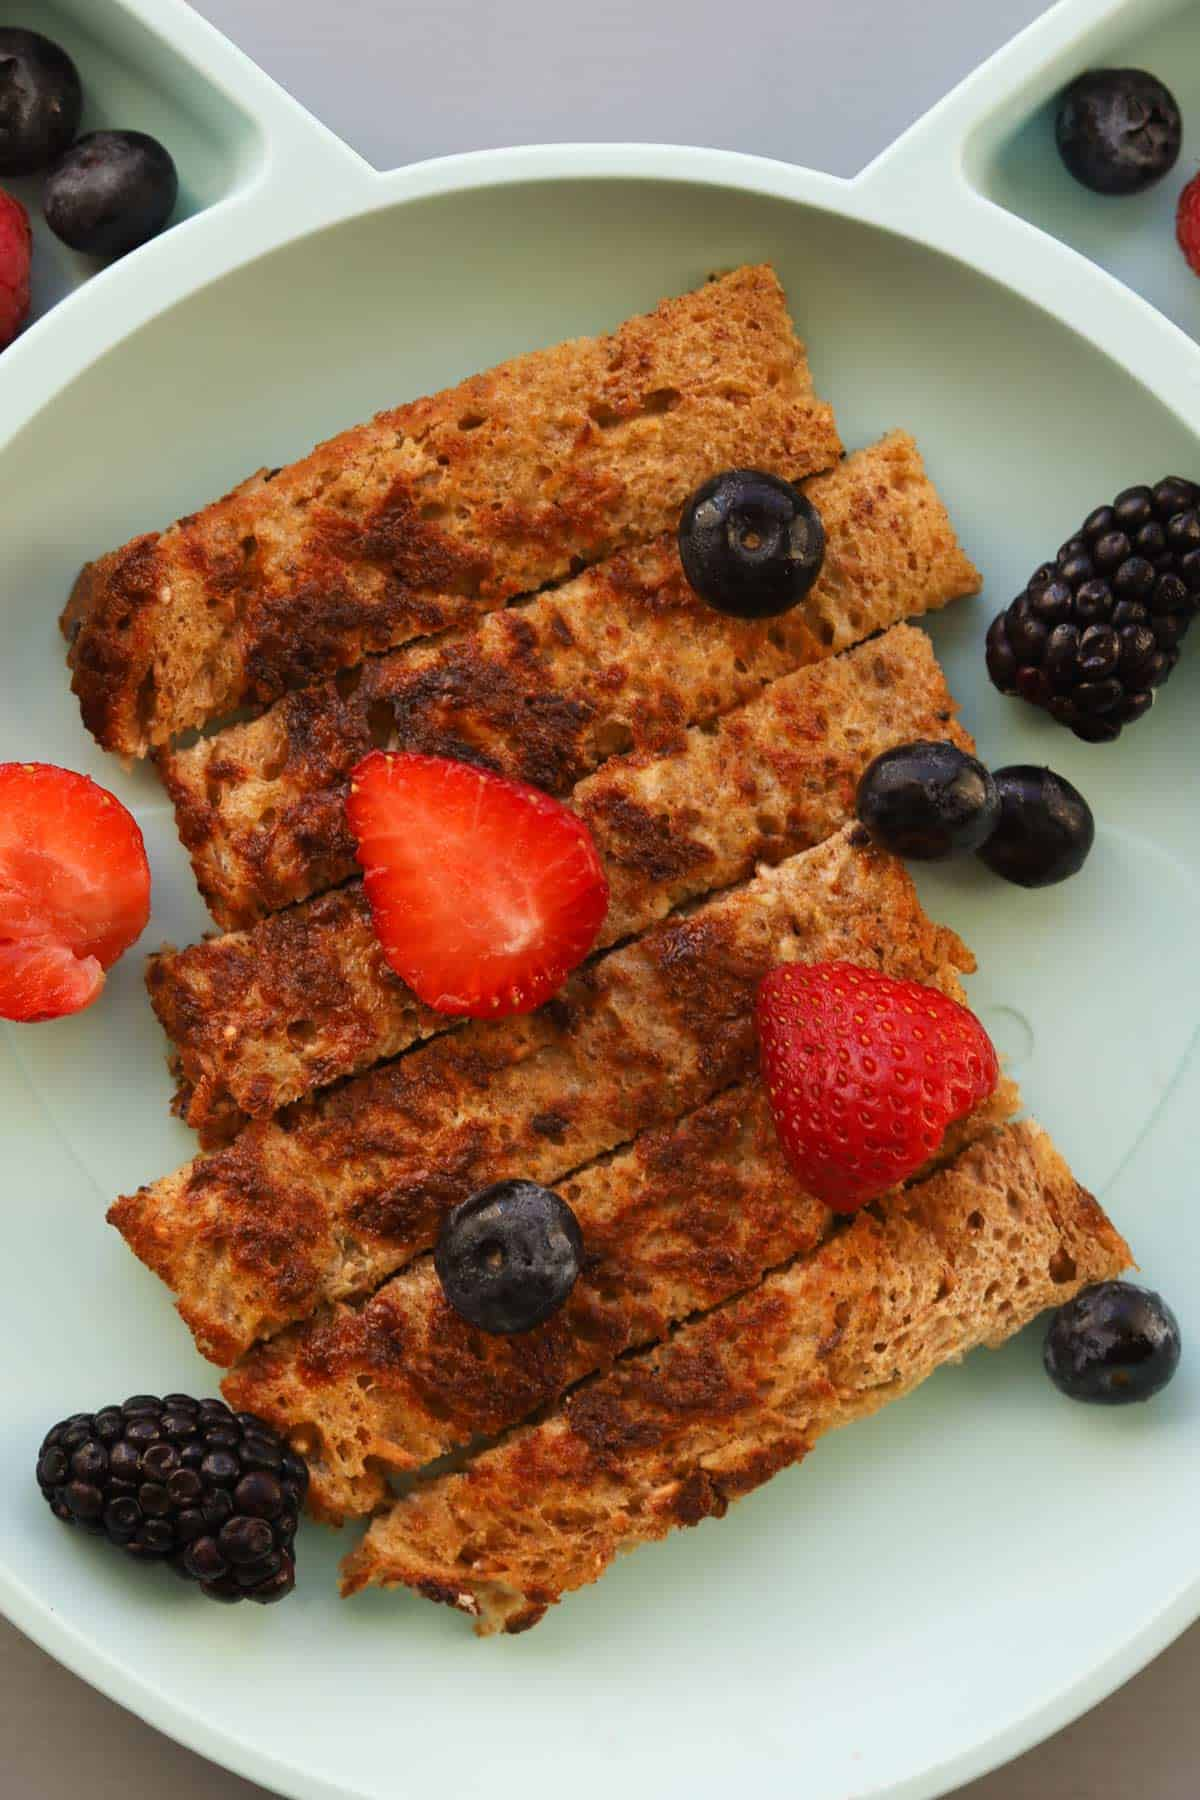 Piece of cooked bread cut into thick slices. Garnished with berries.